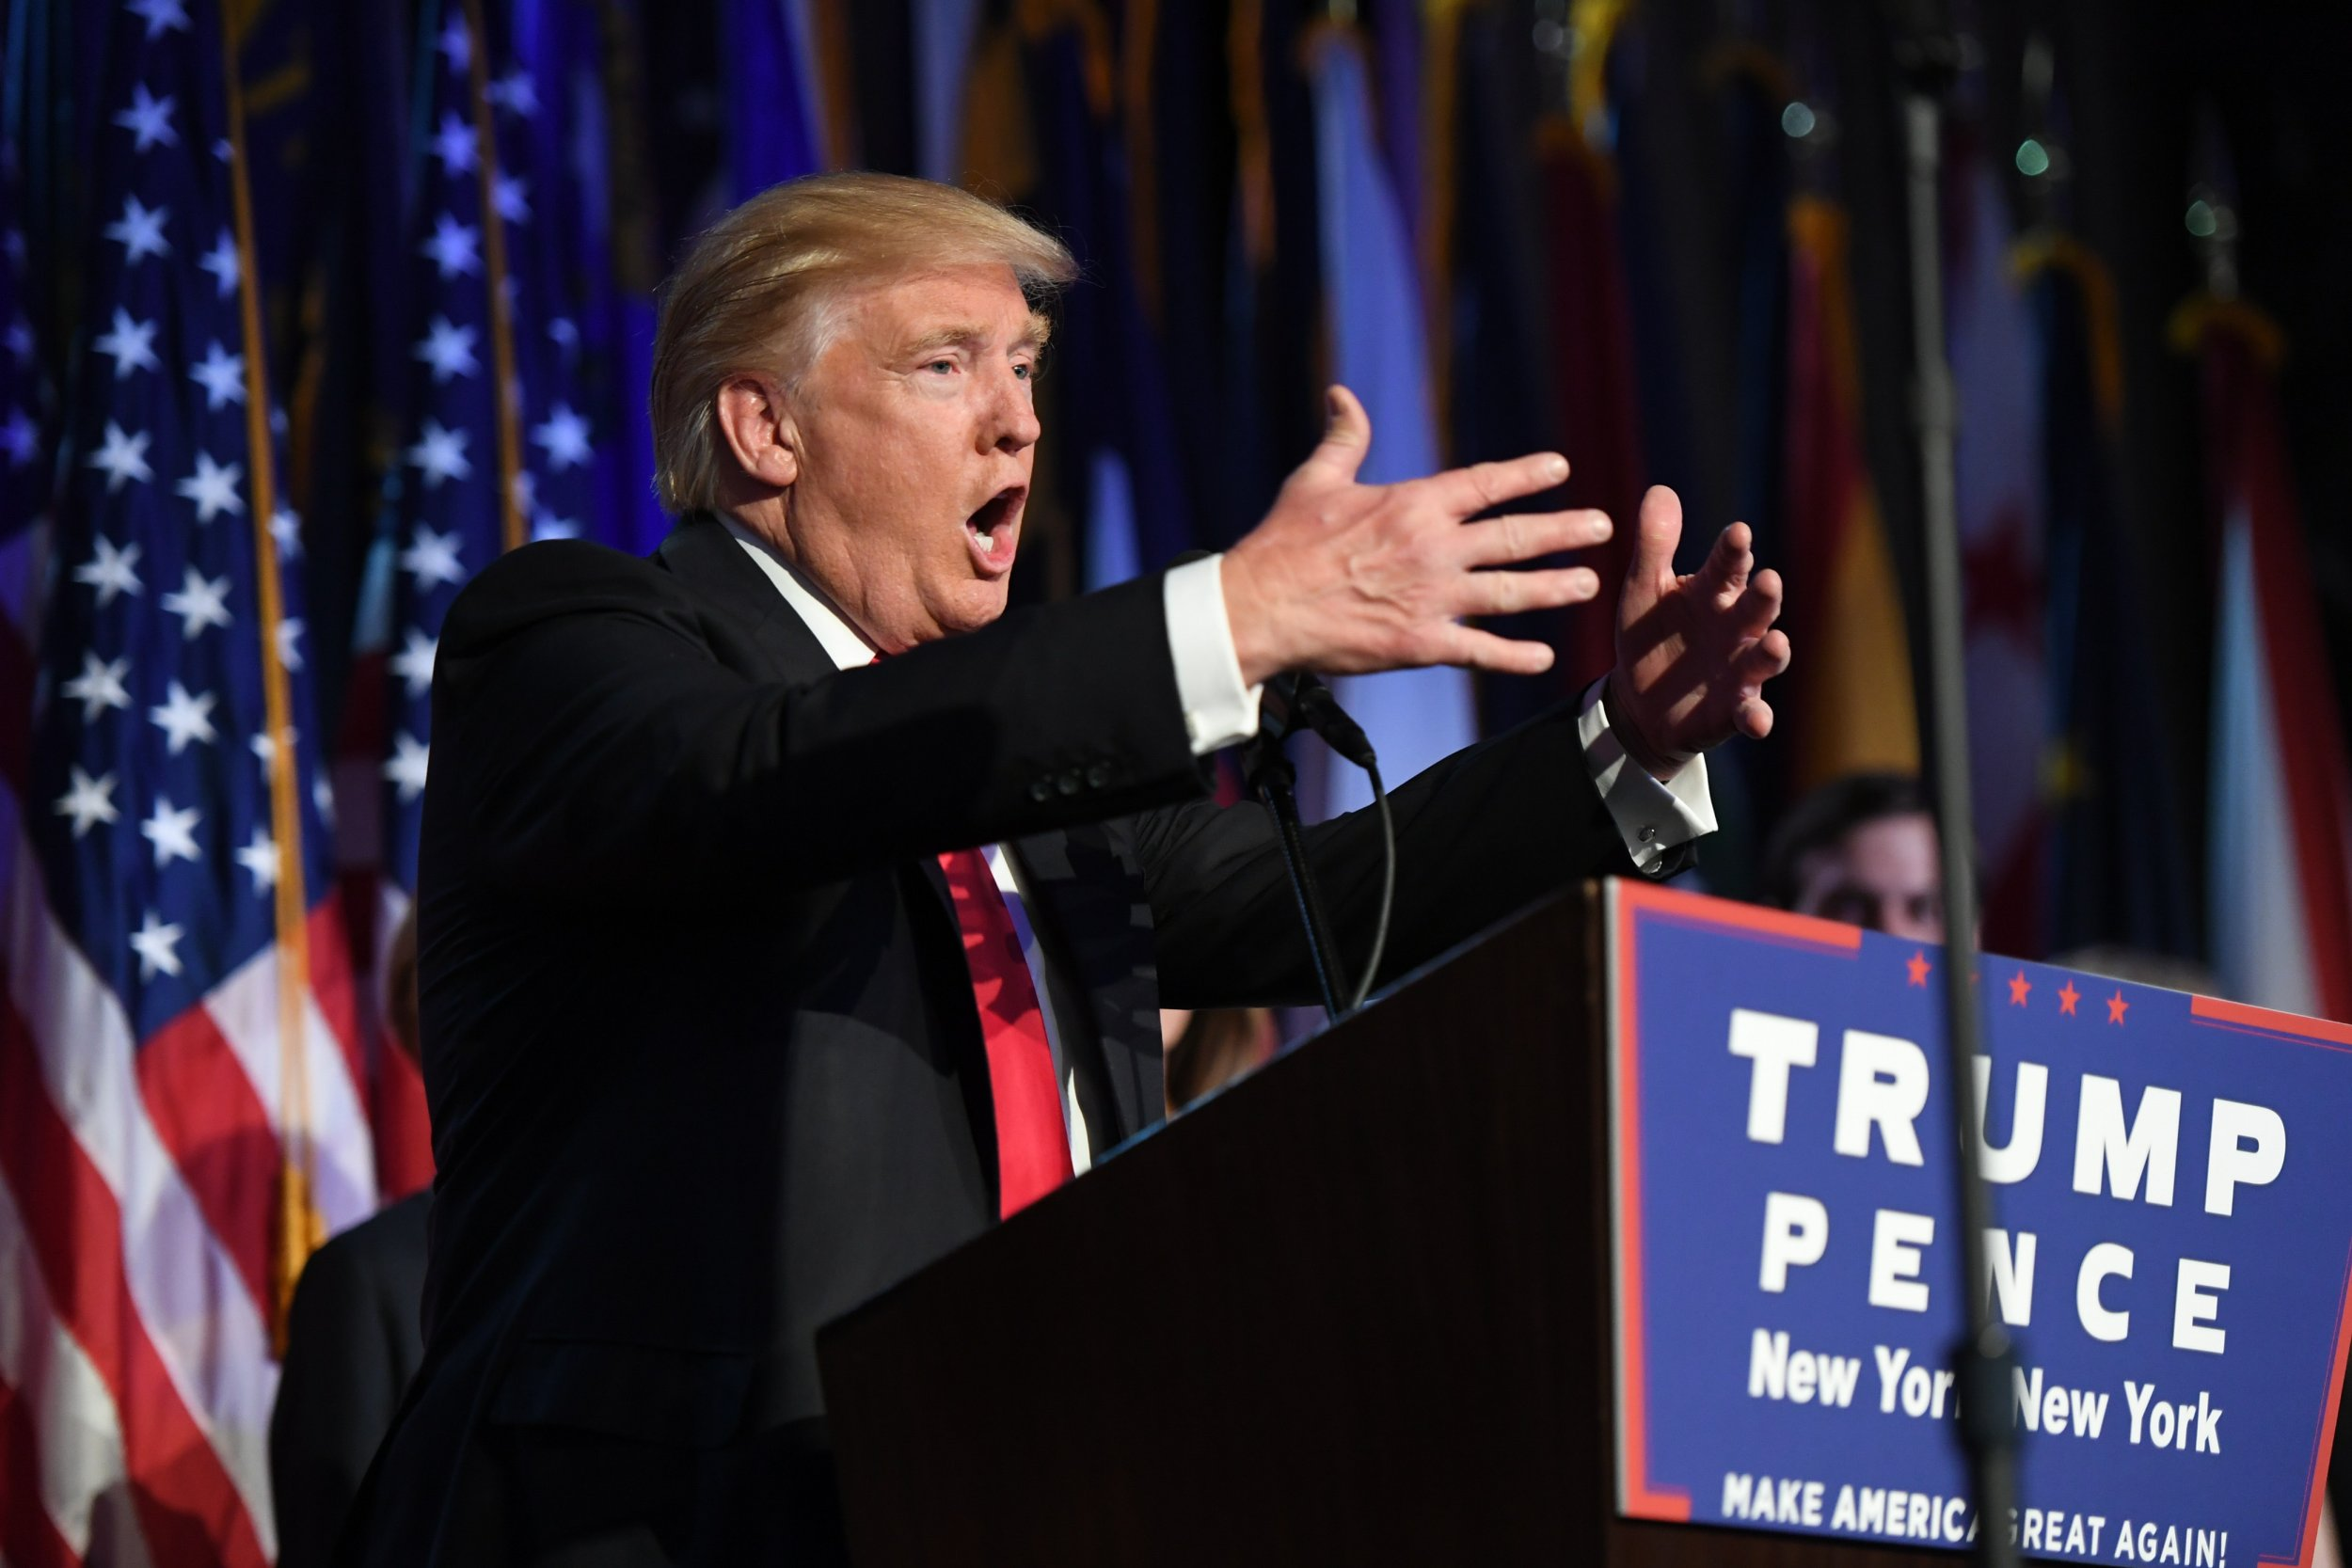 Trump's statement on banning Muslims has disappeared from his website